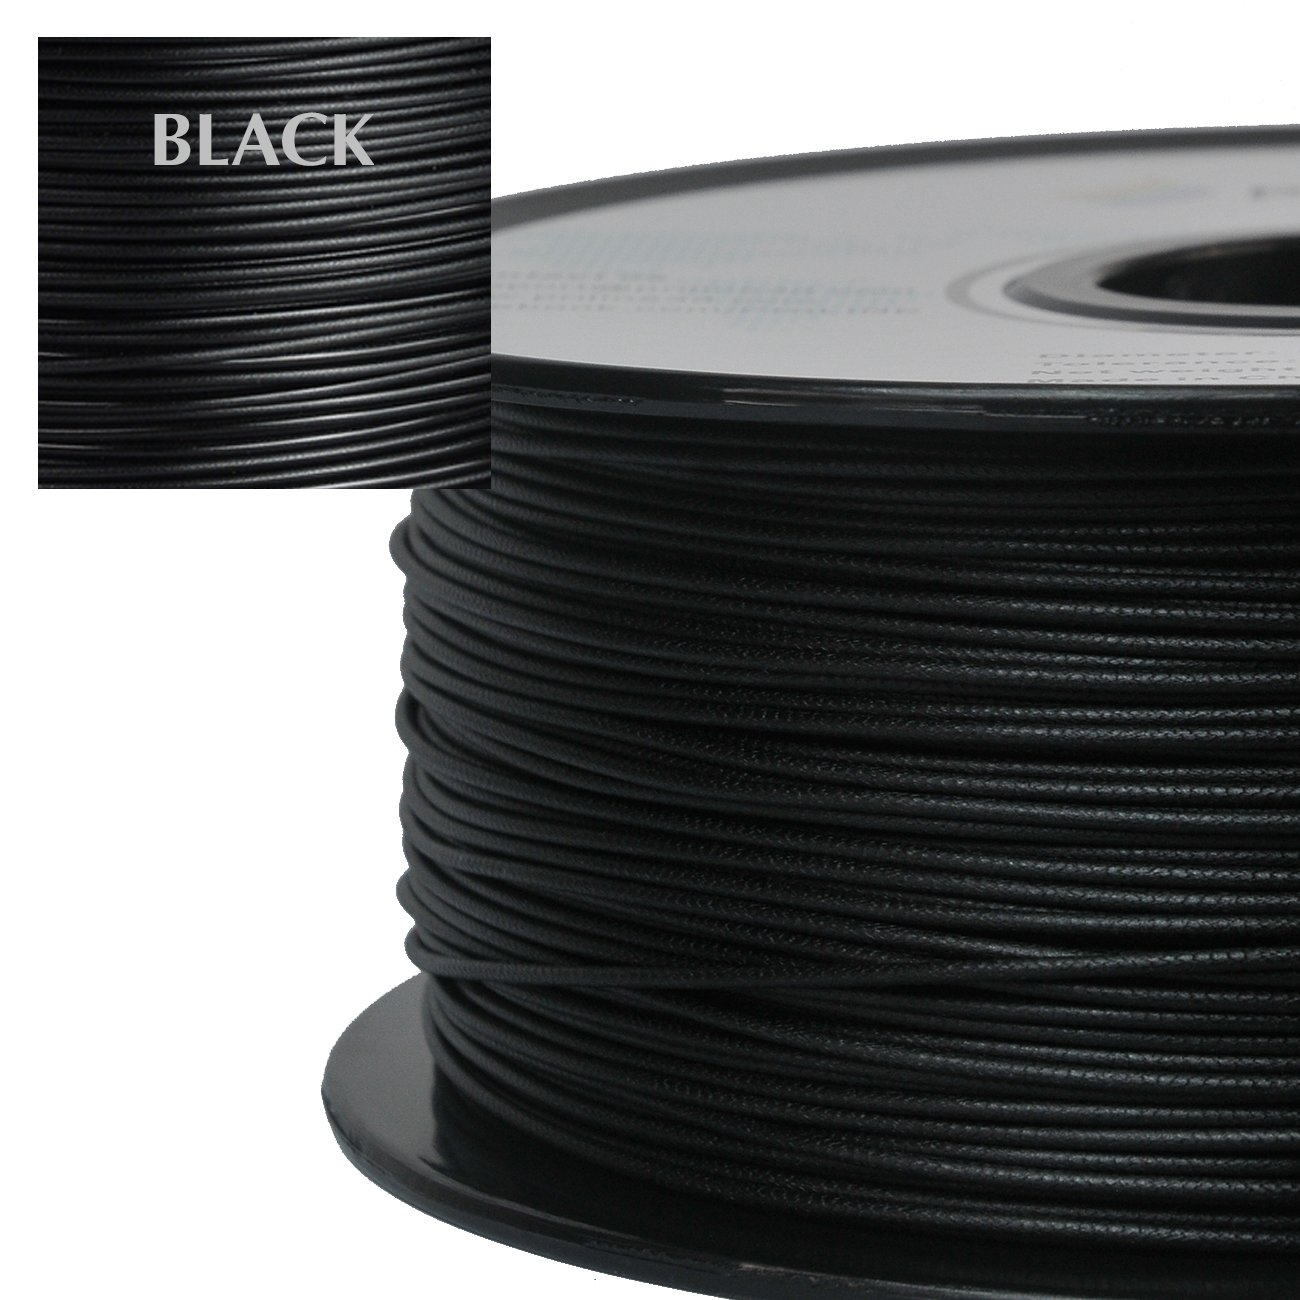 3d Printer Filament 1.75mm Petg 1kg 2.2lb Spool White Color 3d Printing Material Dependable Performance 3d Printers & Supplies Computers/tablets & Networking